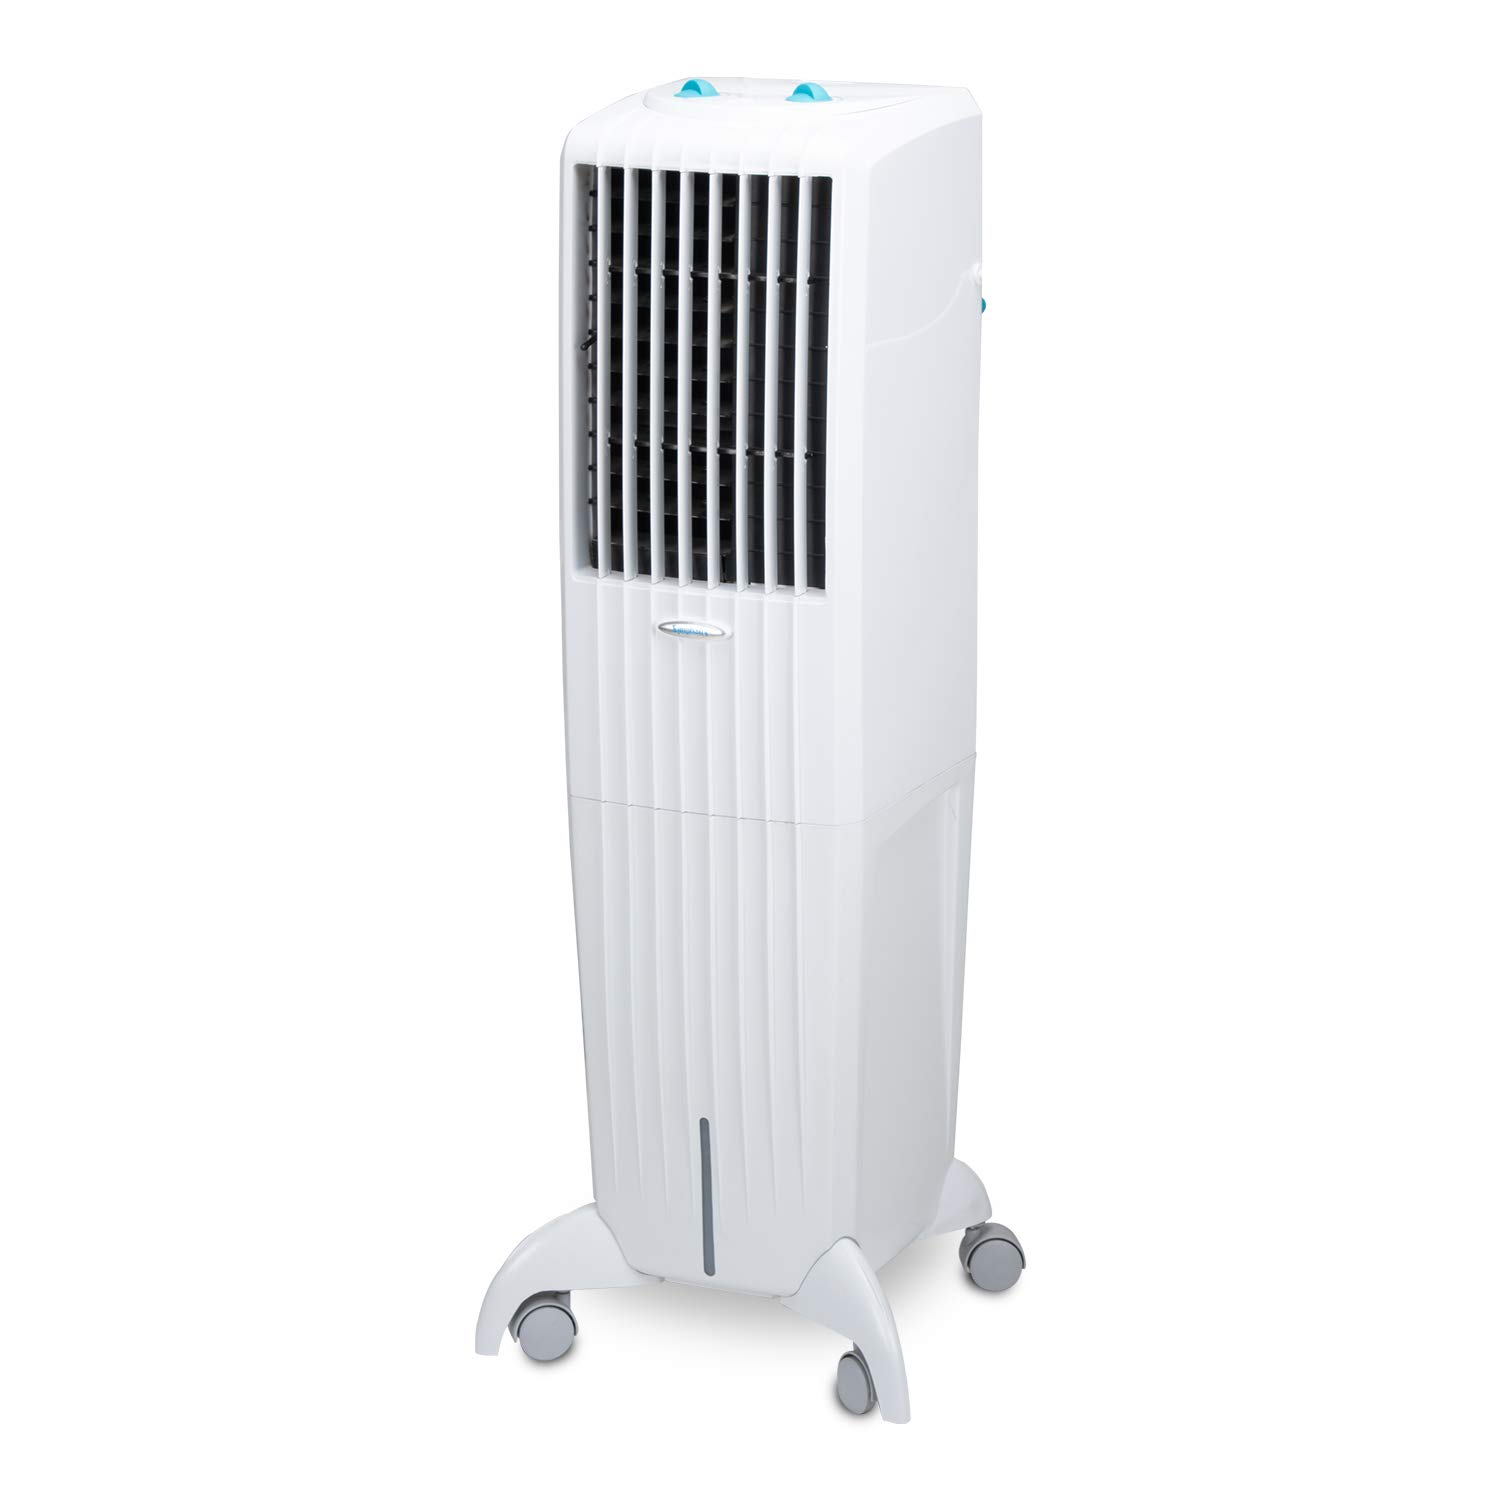 a0de56dc123 Symphony Diet 35T 35 Litre Air Cooler (White) - with i-Pure Technology   Amazon.in  Home   Kitchen